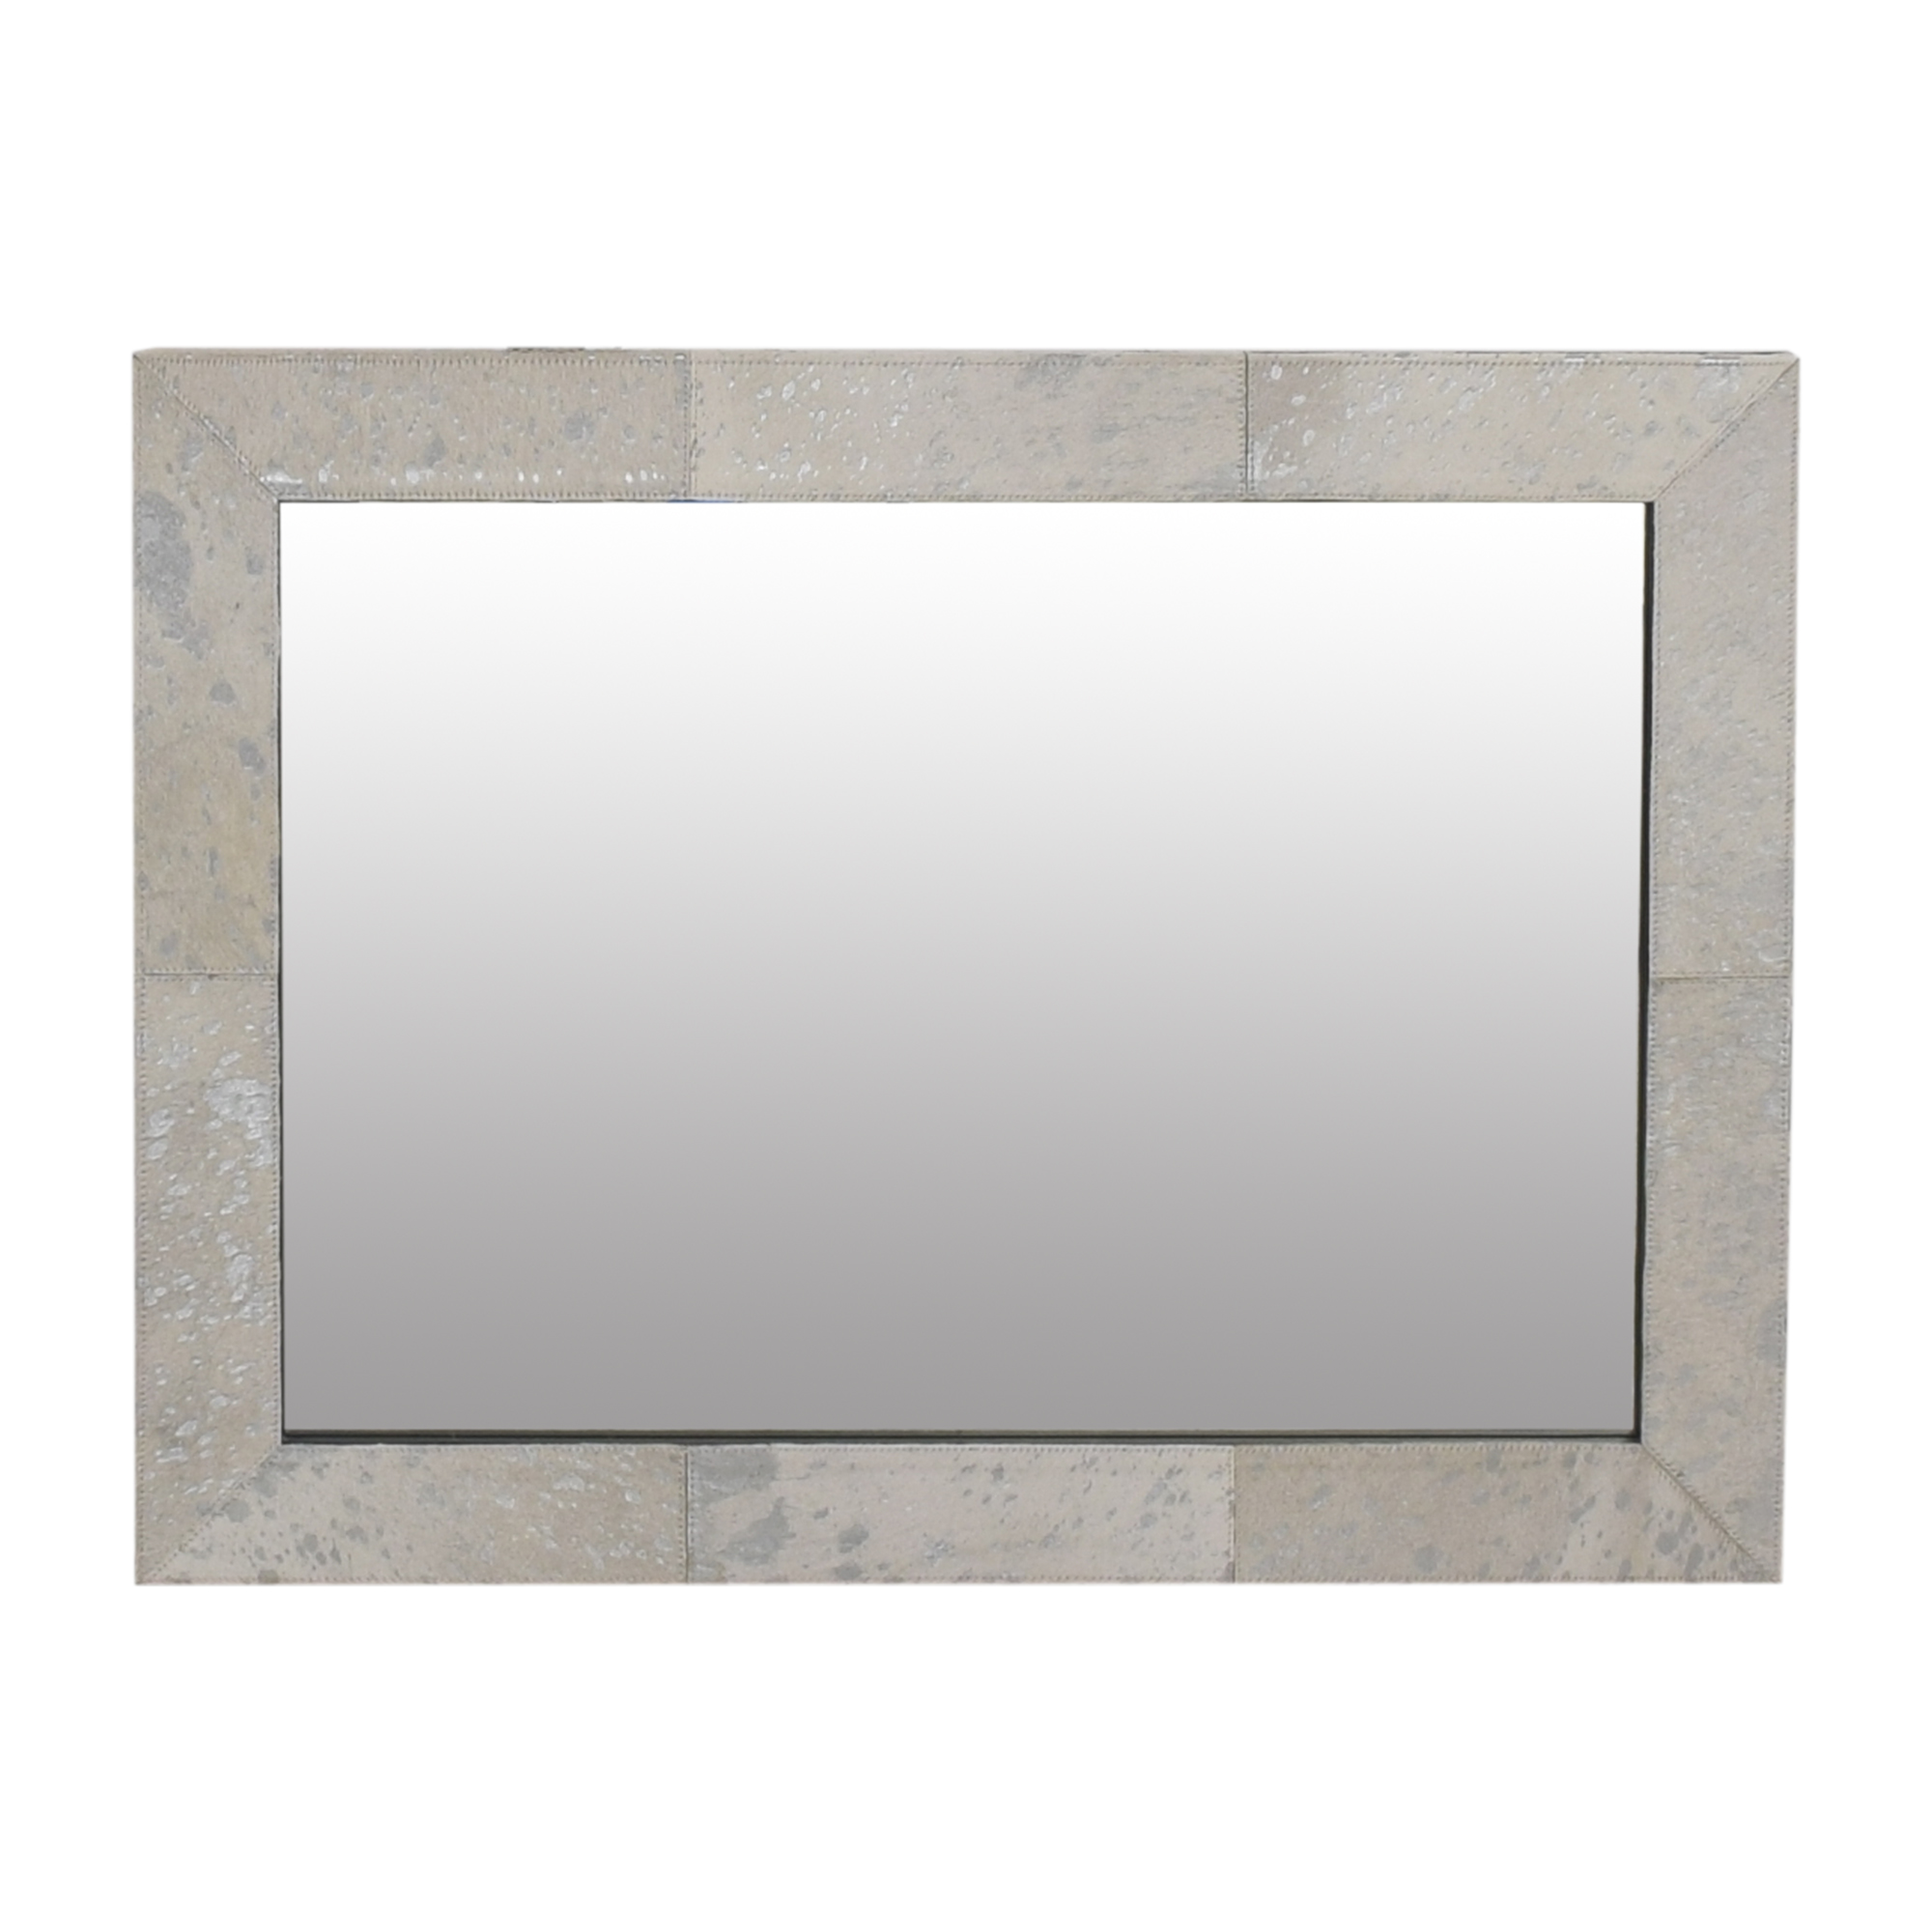 Restoration Hardware Restoration Hardware Metallic Patterned Mirror ma